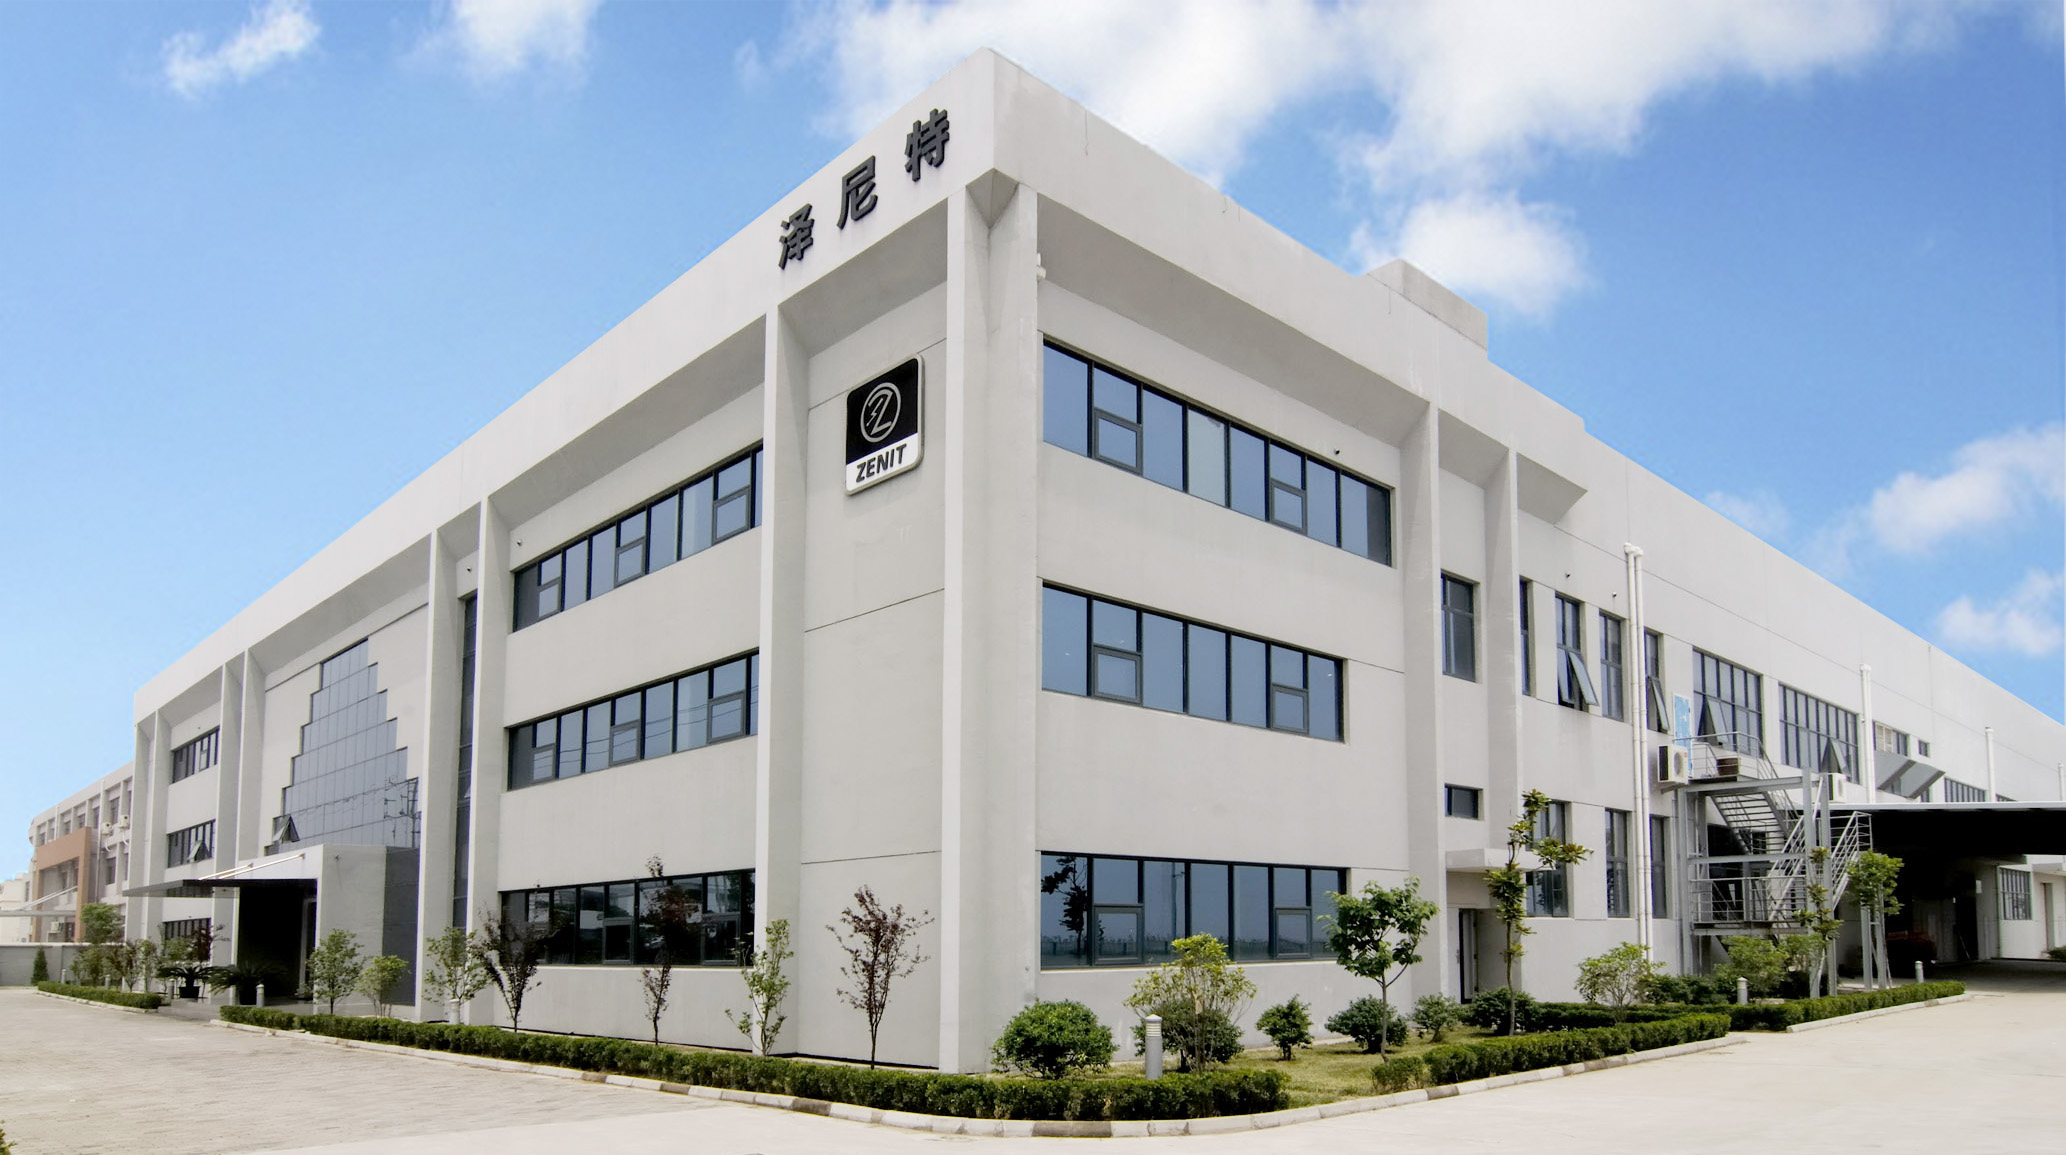 Zenit manufacturing plant China